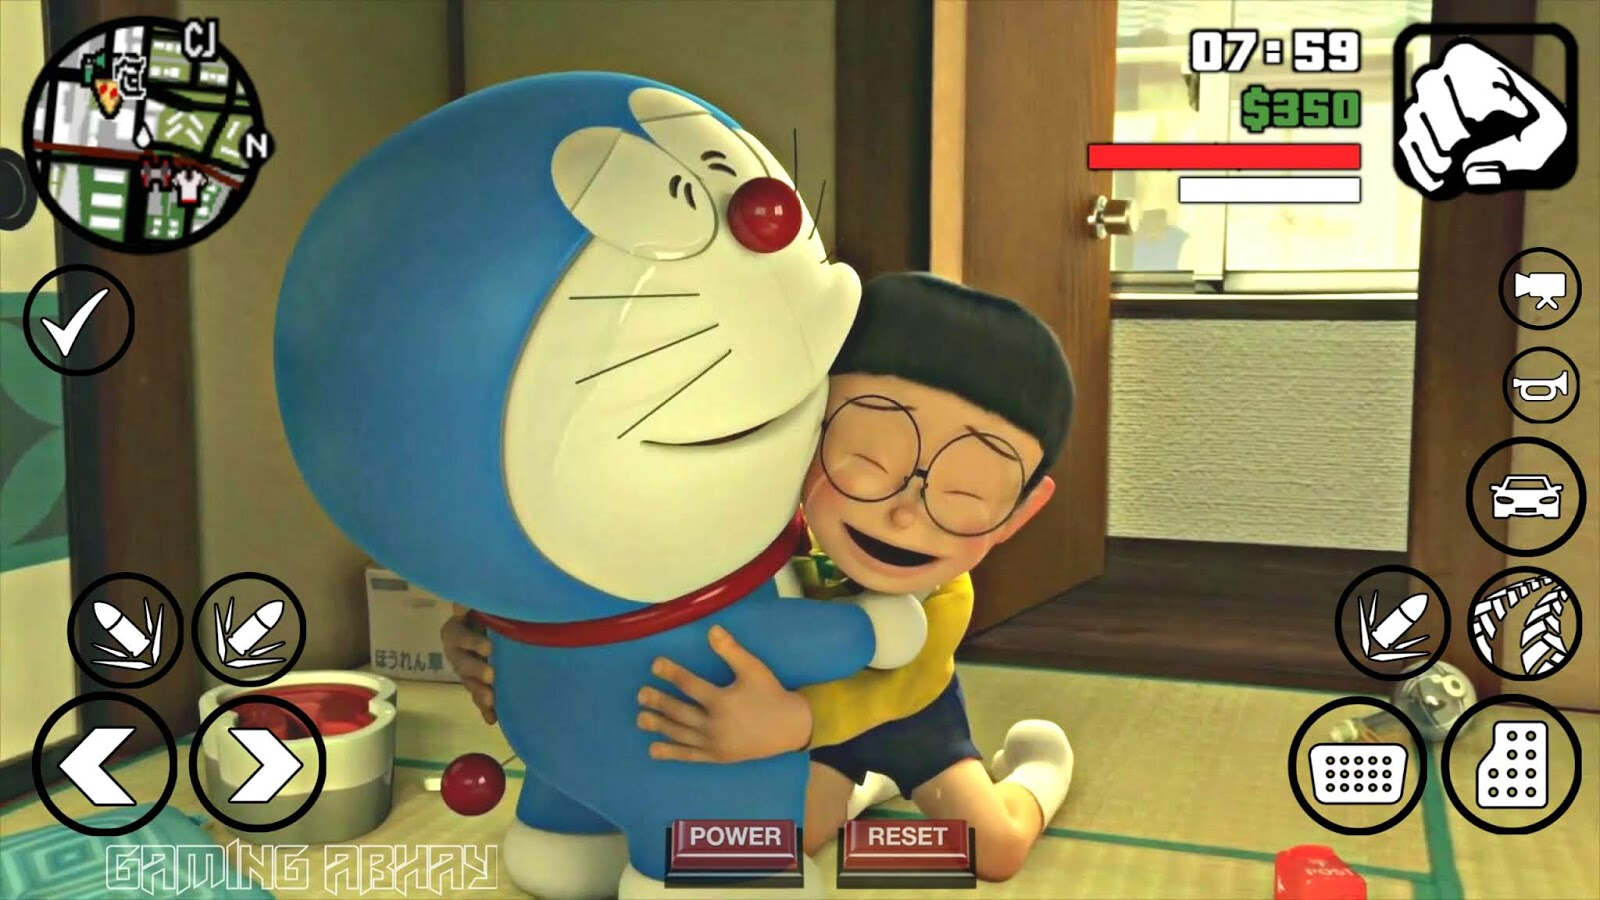 grand theft auto doraemon apk download